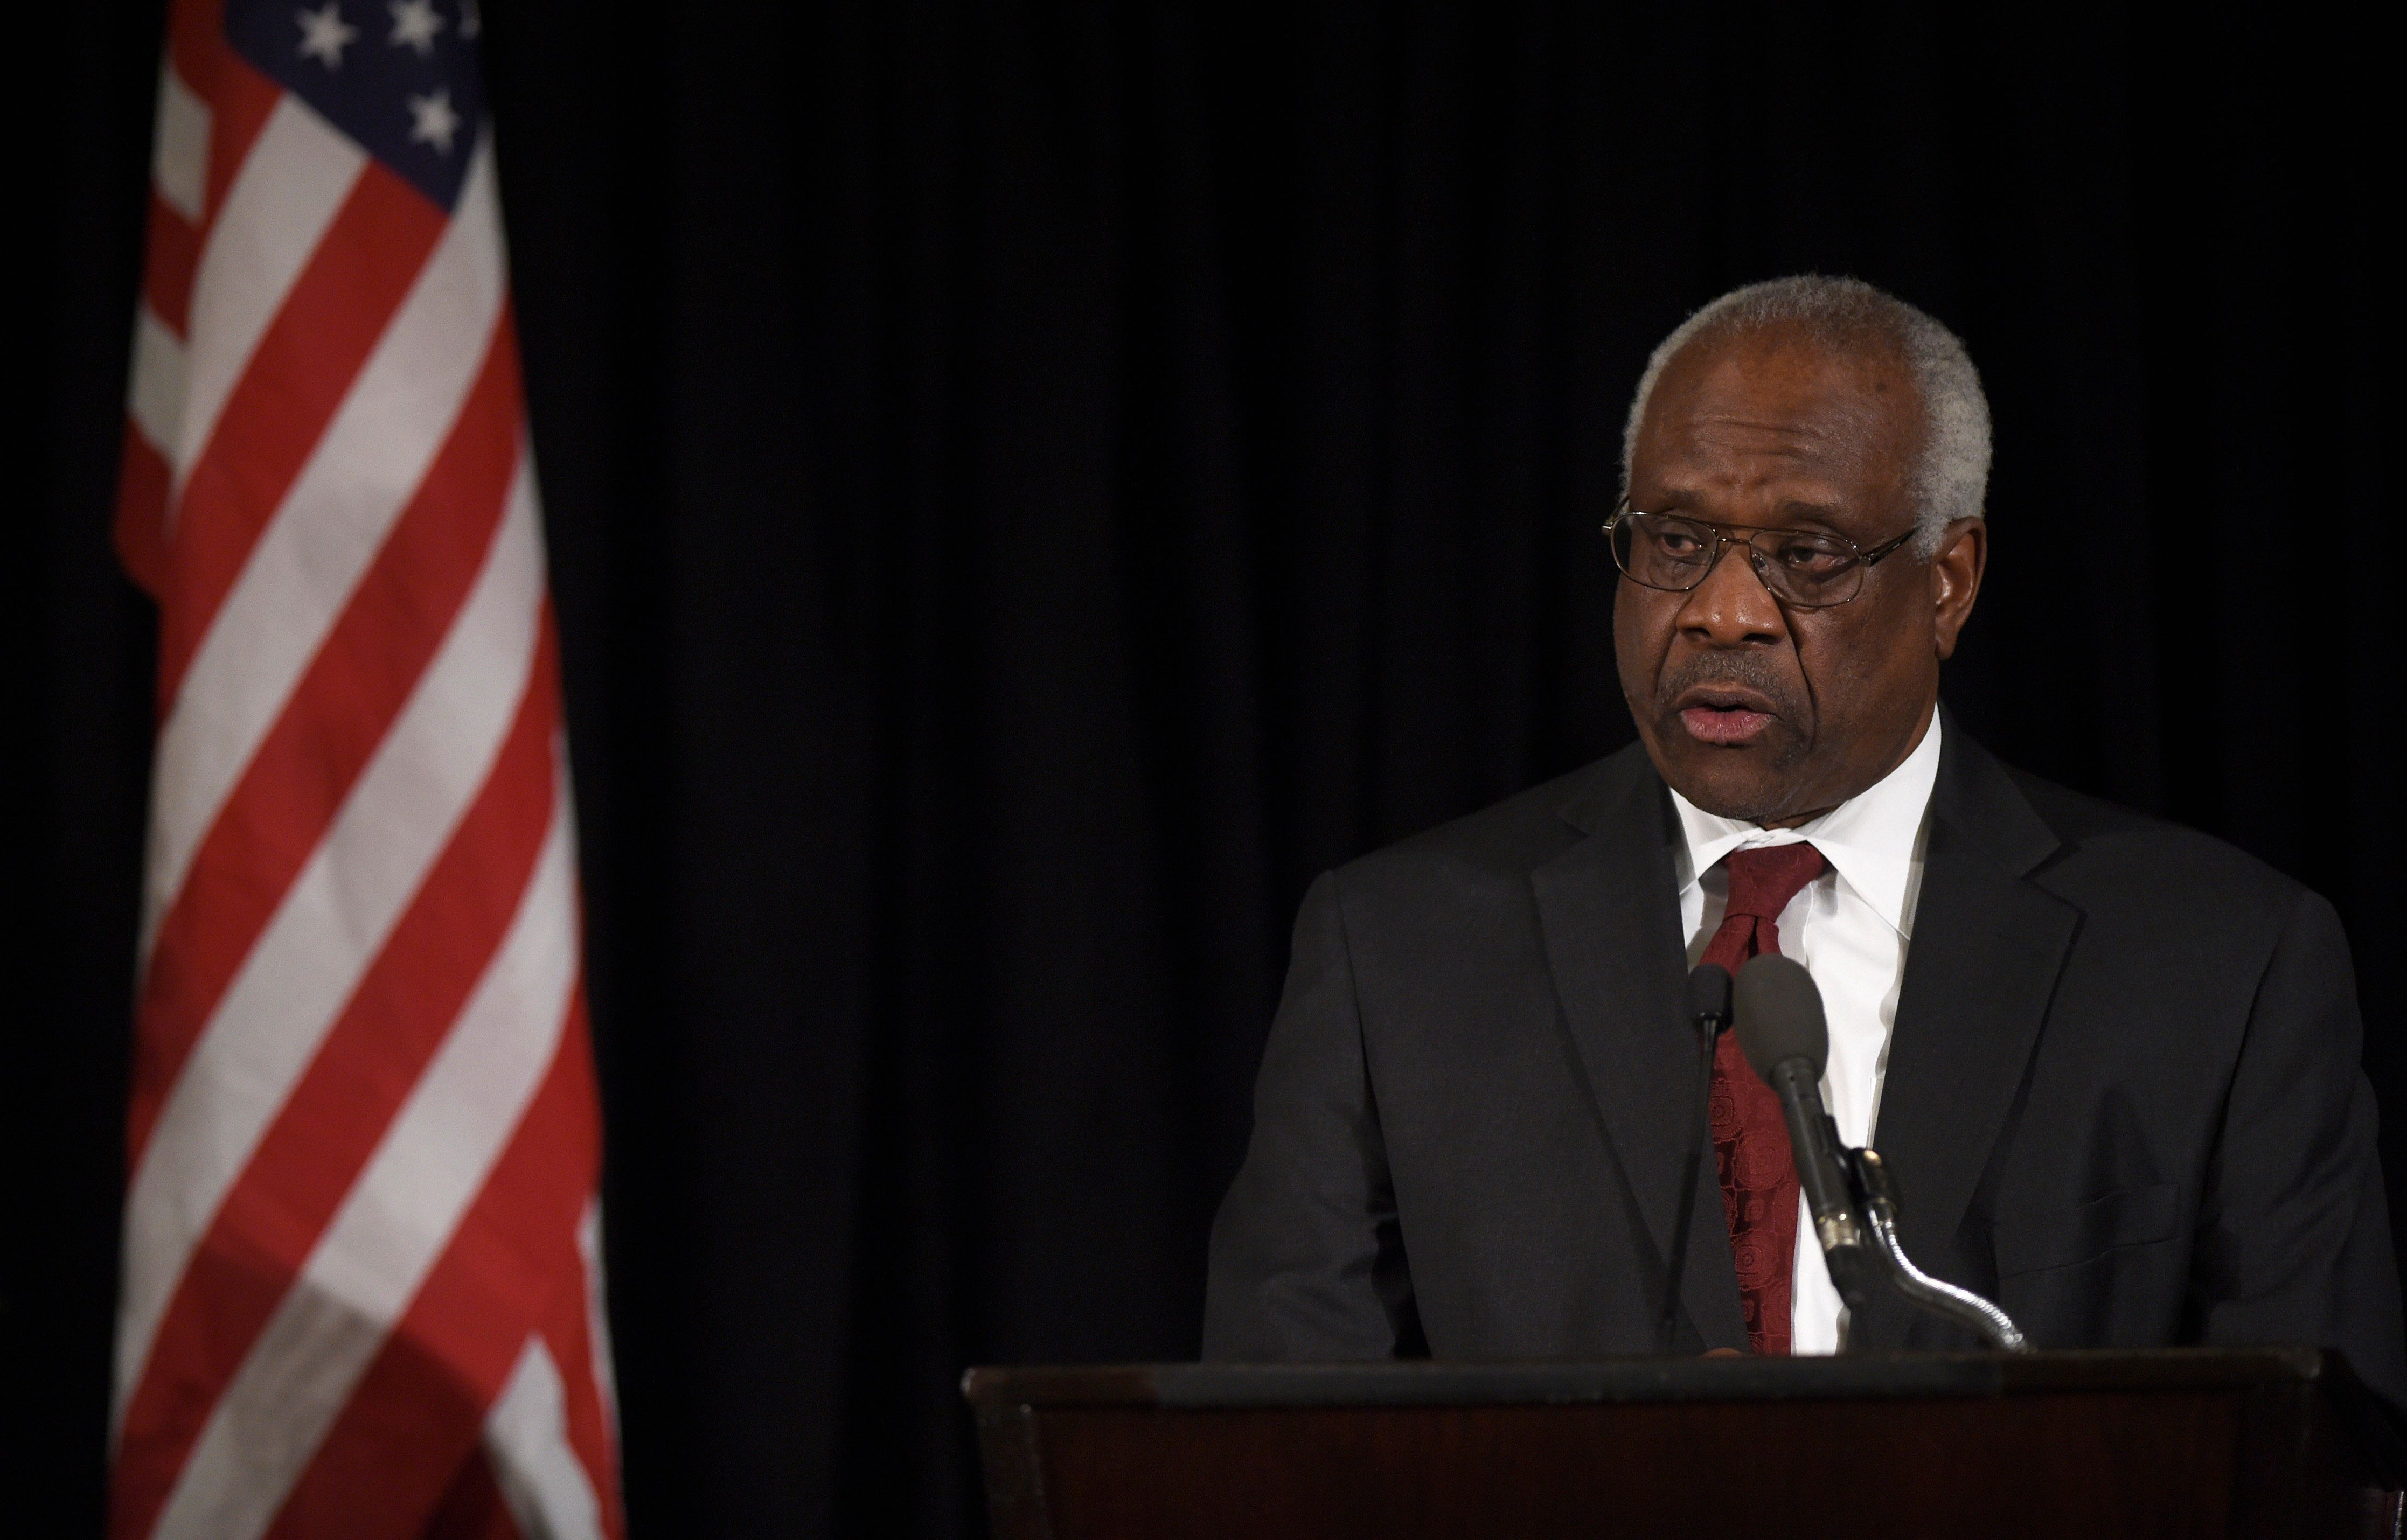 Justice Clarence Thomas wrotethe opinion striking down a local Puerto Rican law onbankruptcy.